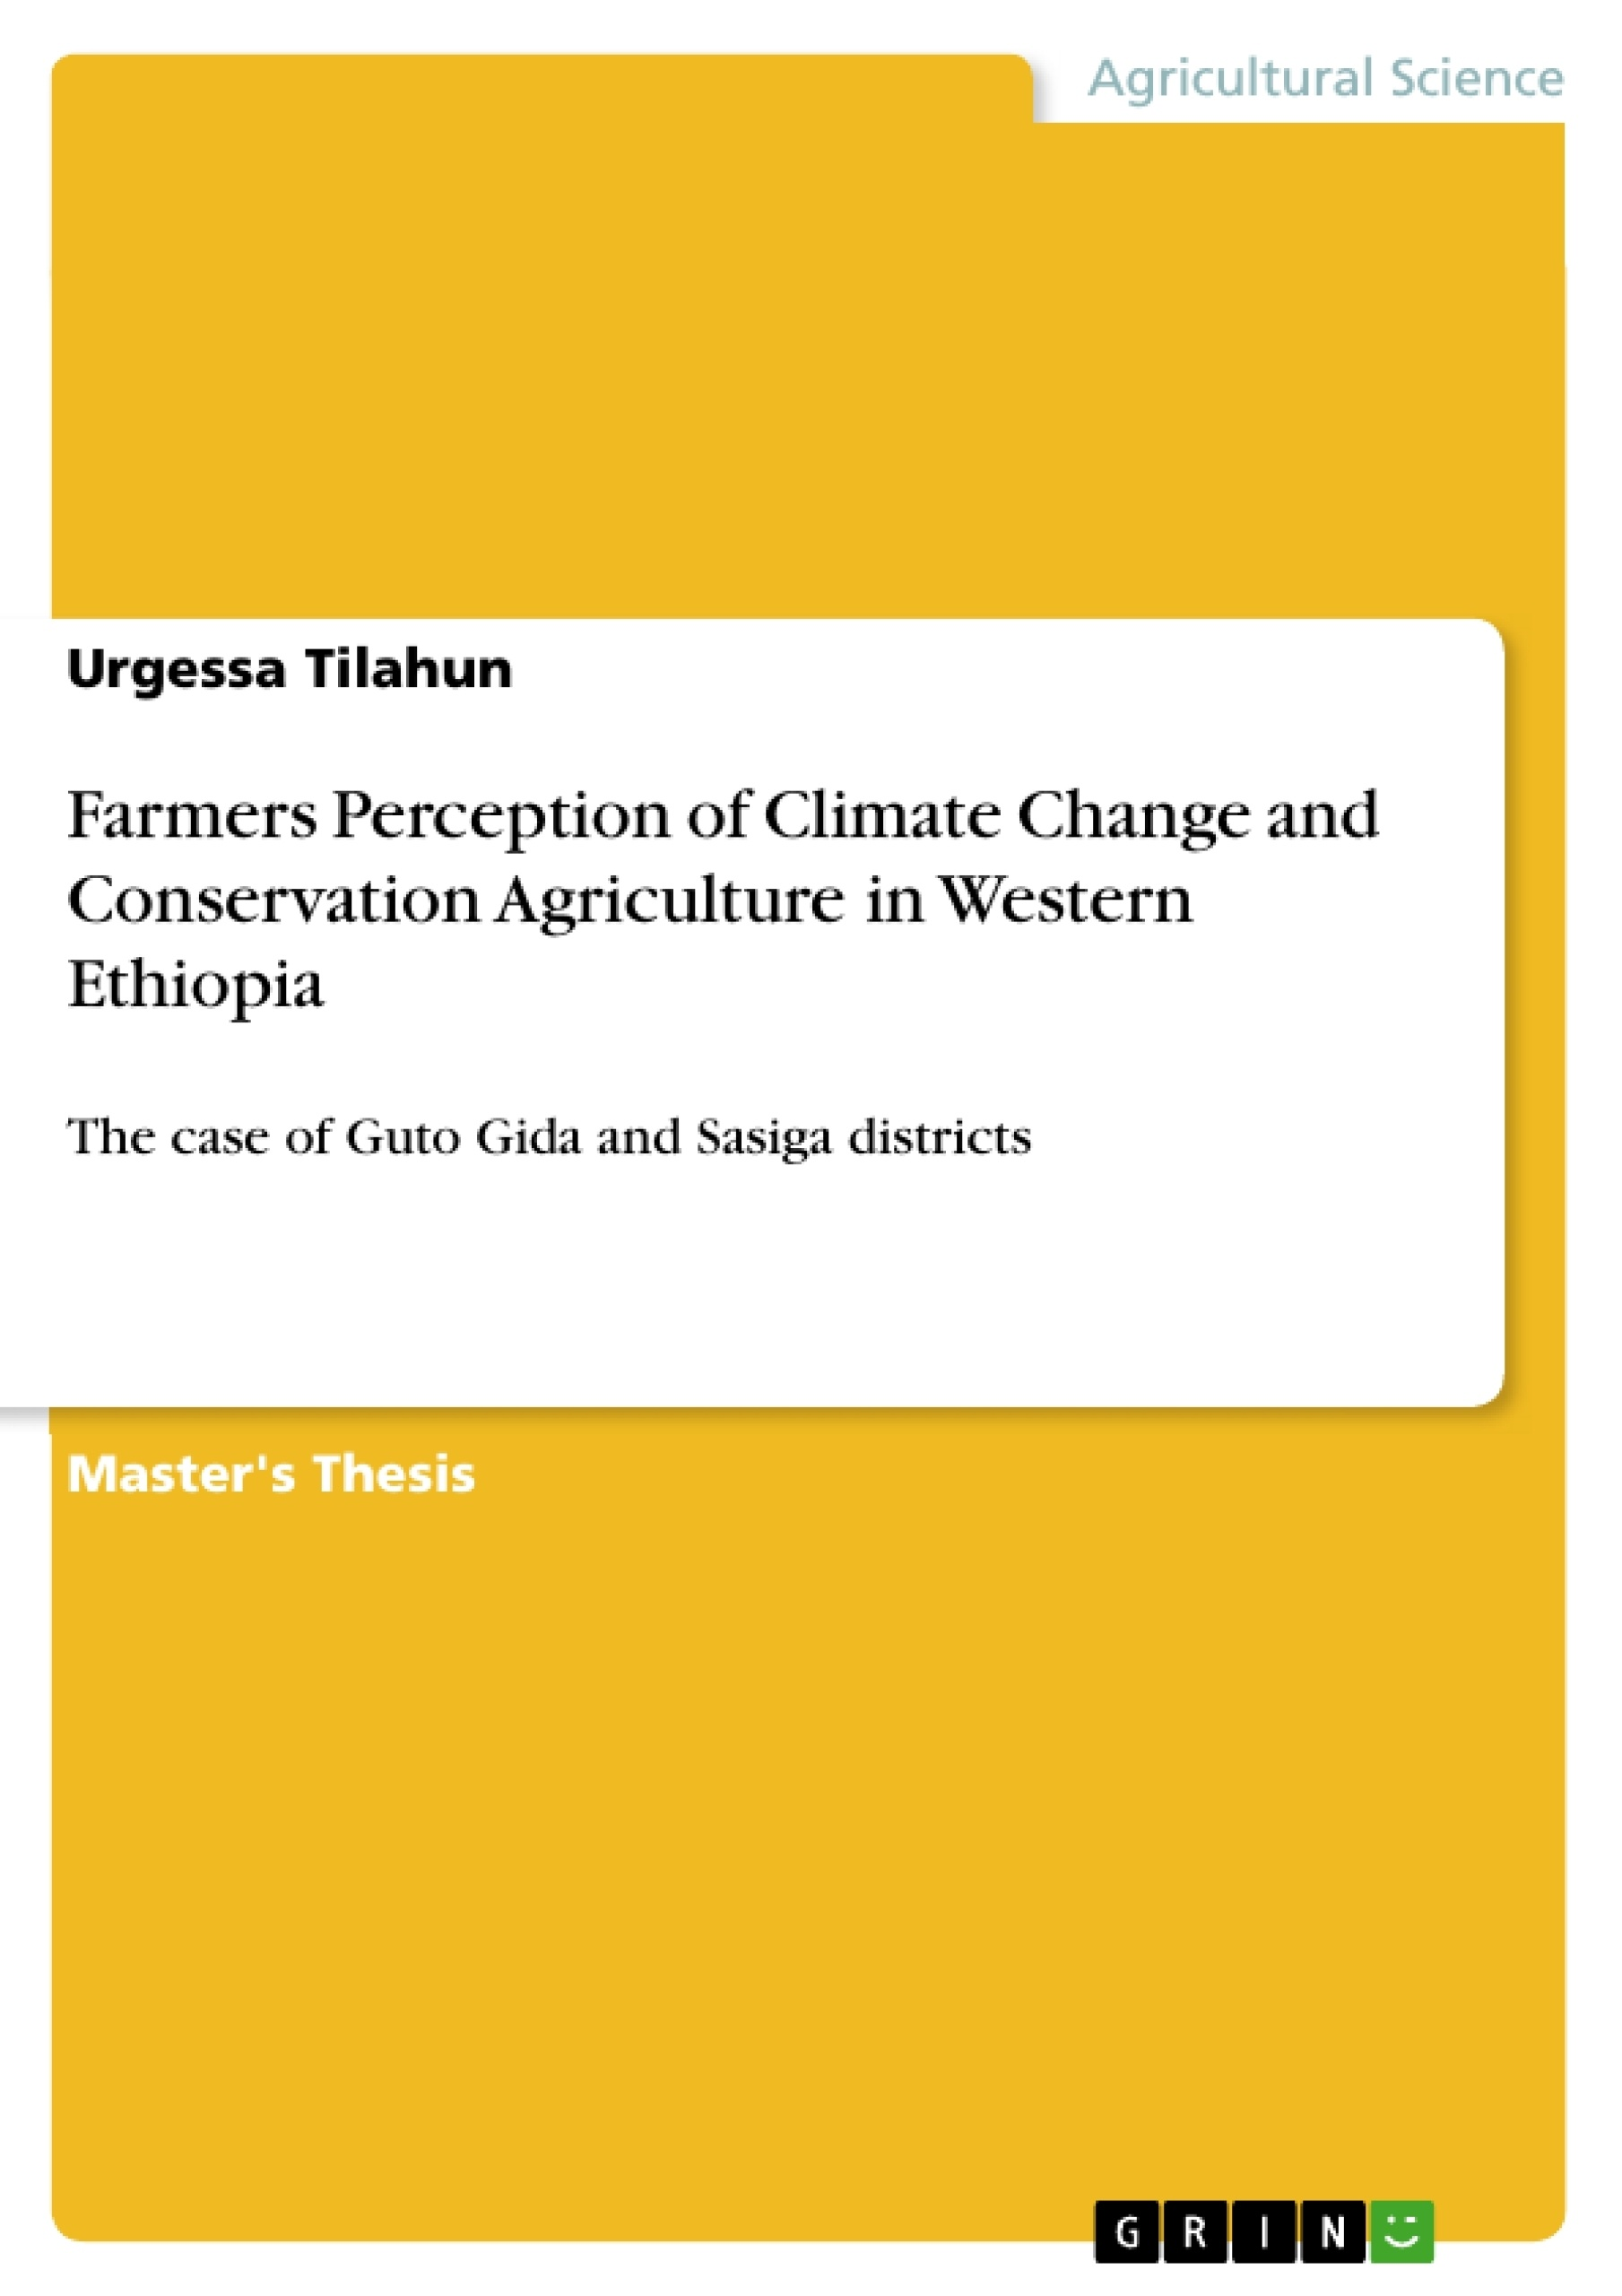 GRIN - Farmers Perception of Climate Change and Conservation Agriculture in  Western Ethiopia